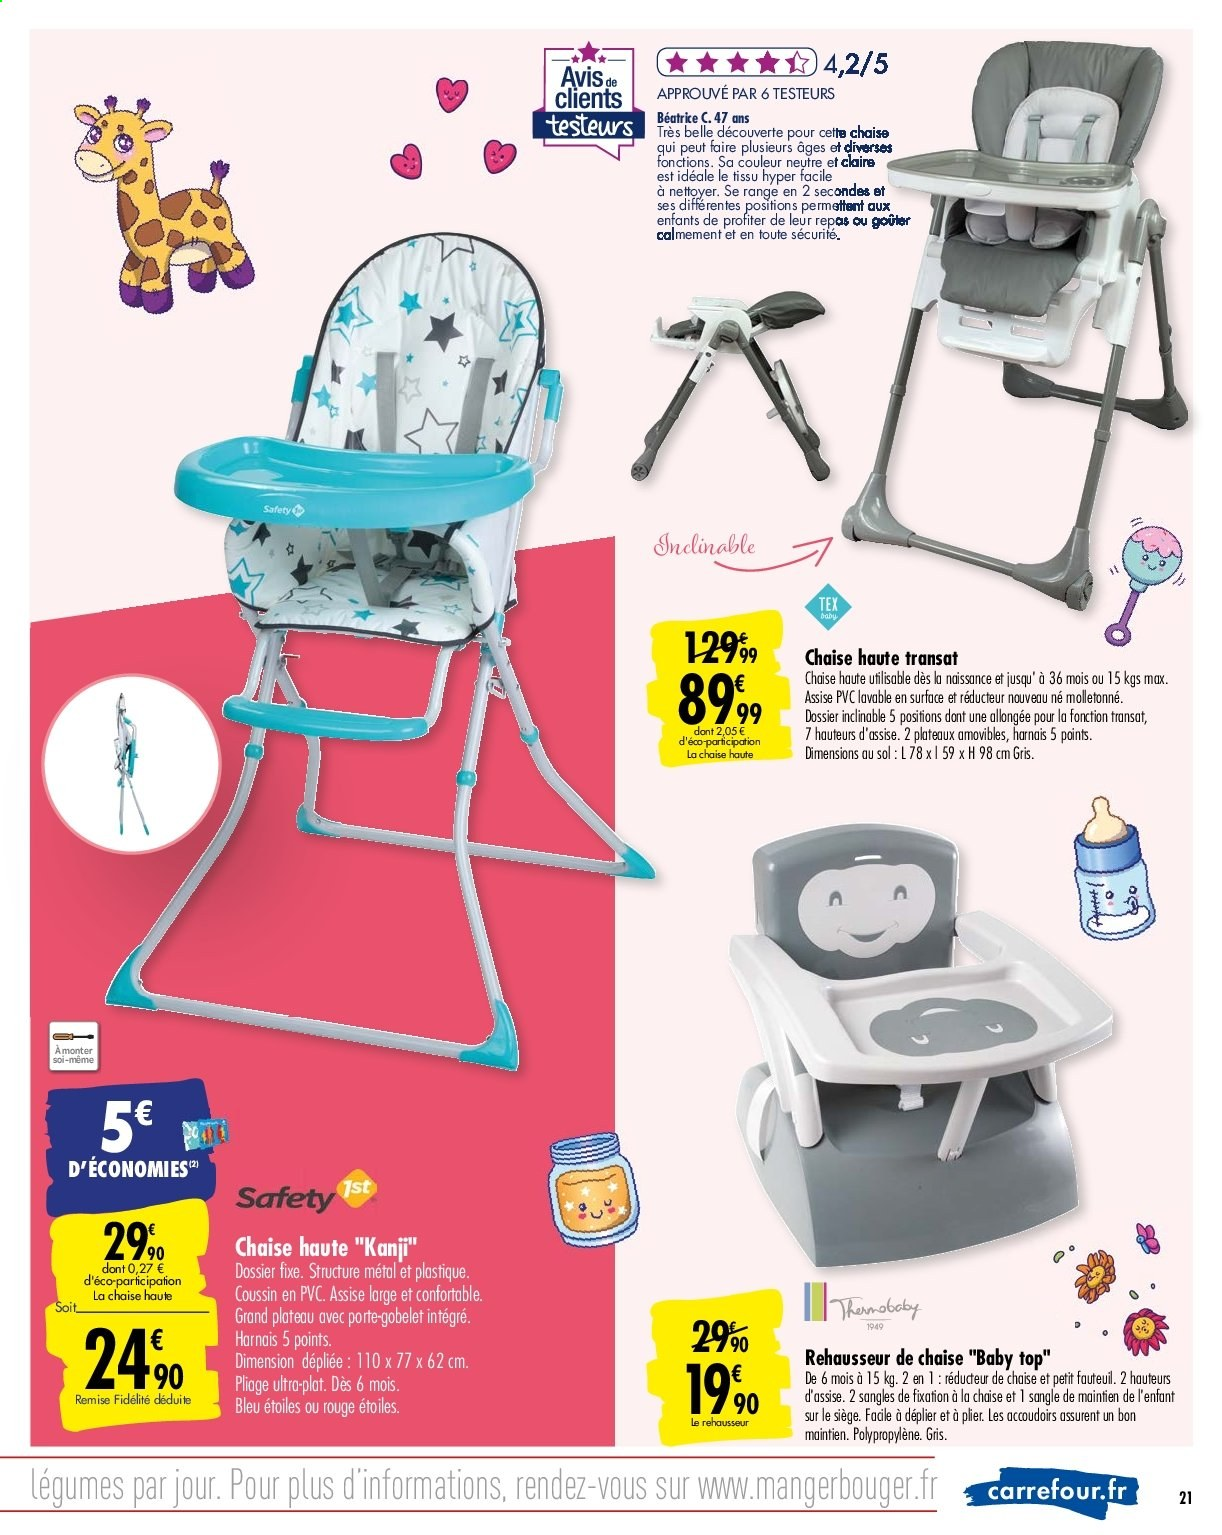 Catalogue Carrefour 5.5.5 - 5.5.5 - page 5  Vos Promos